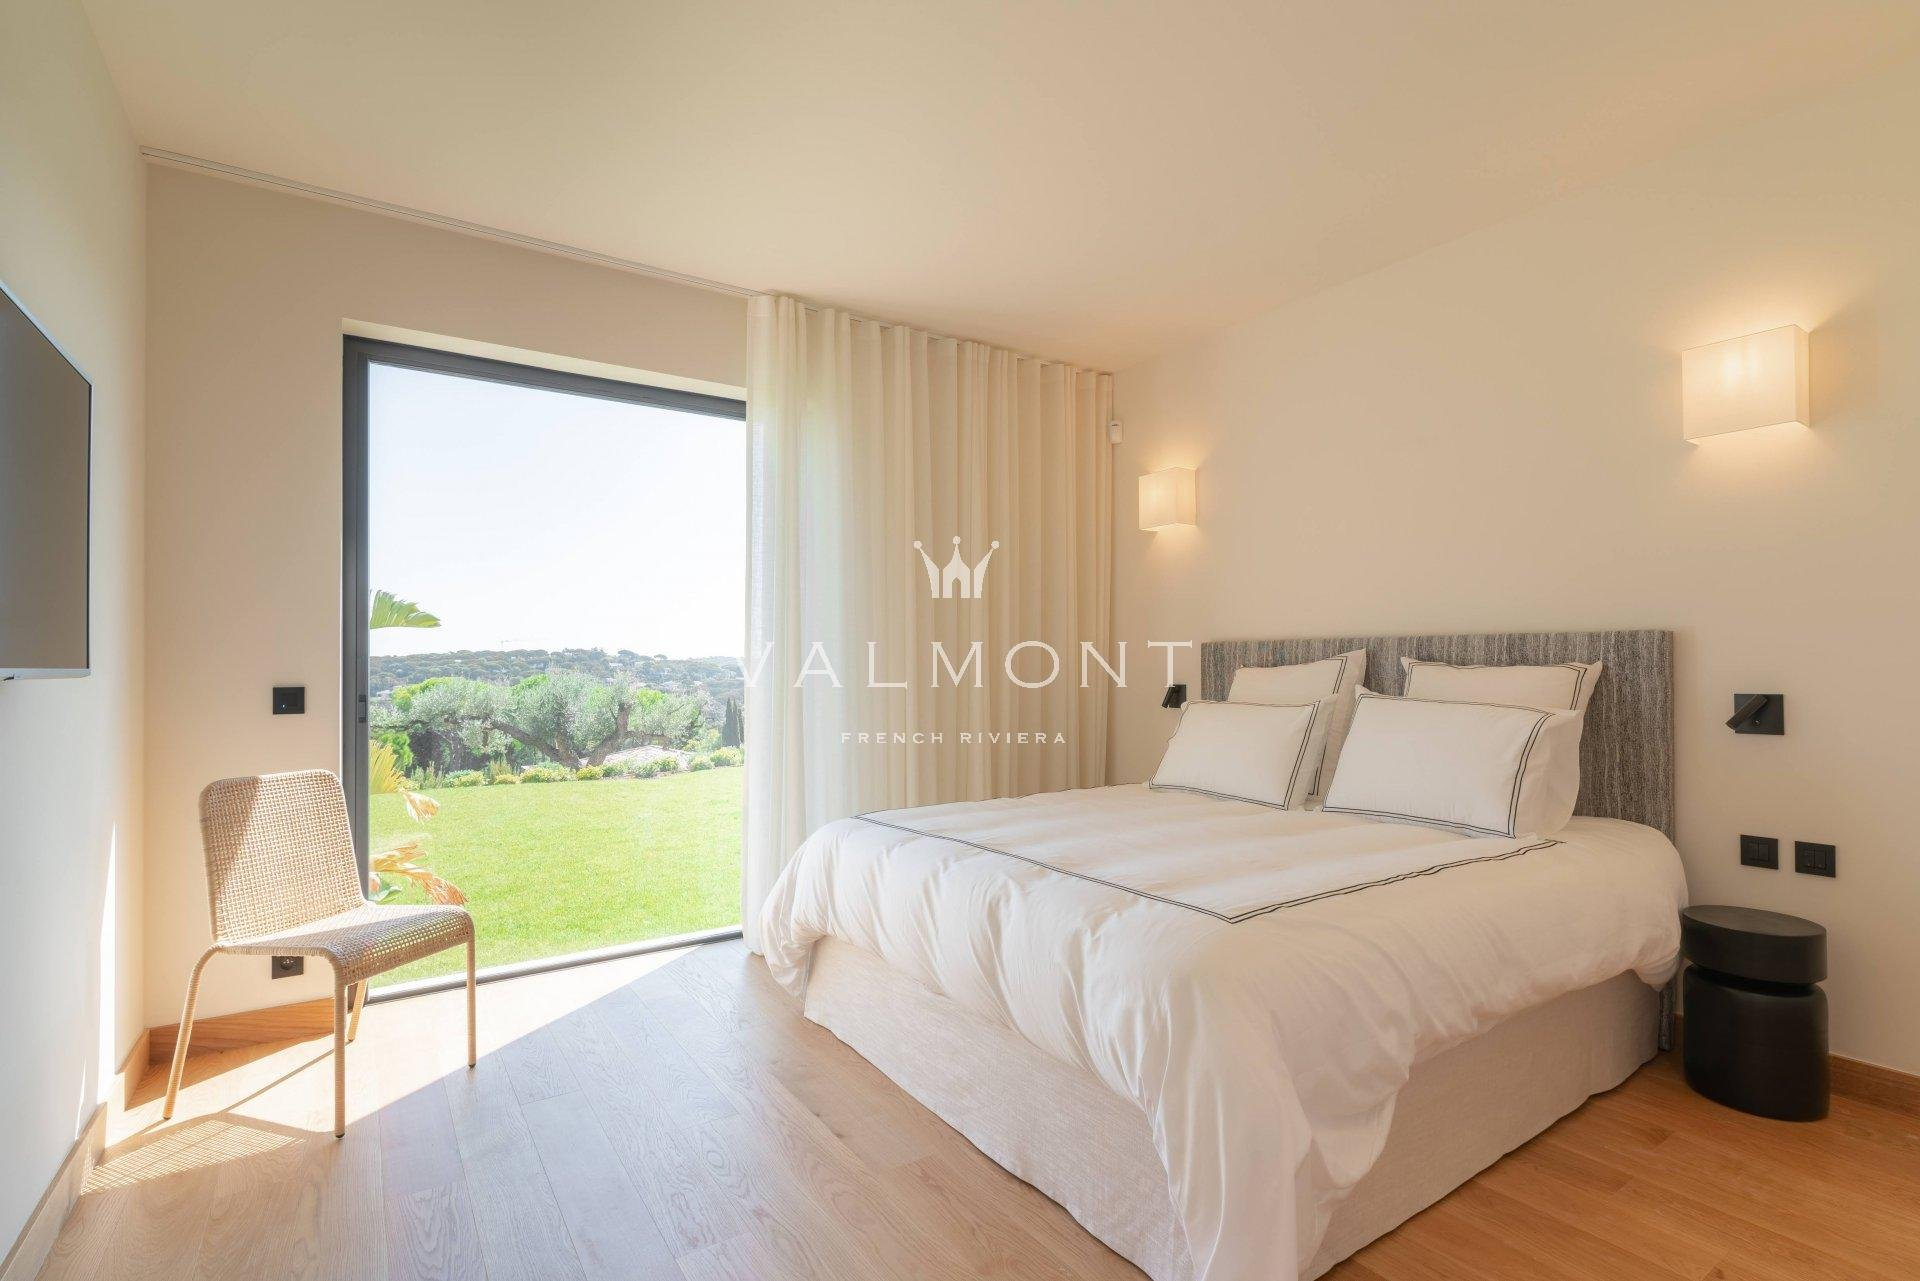 BRAND NEW VILLA WITH AMAZING VIEWS OVER PAMPELONNE AND COUNTRYSIDE